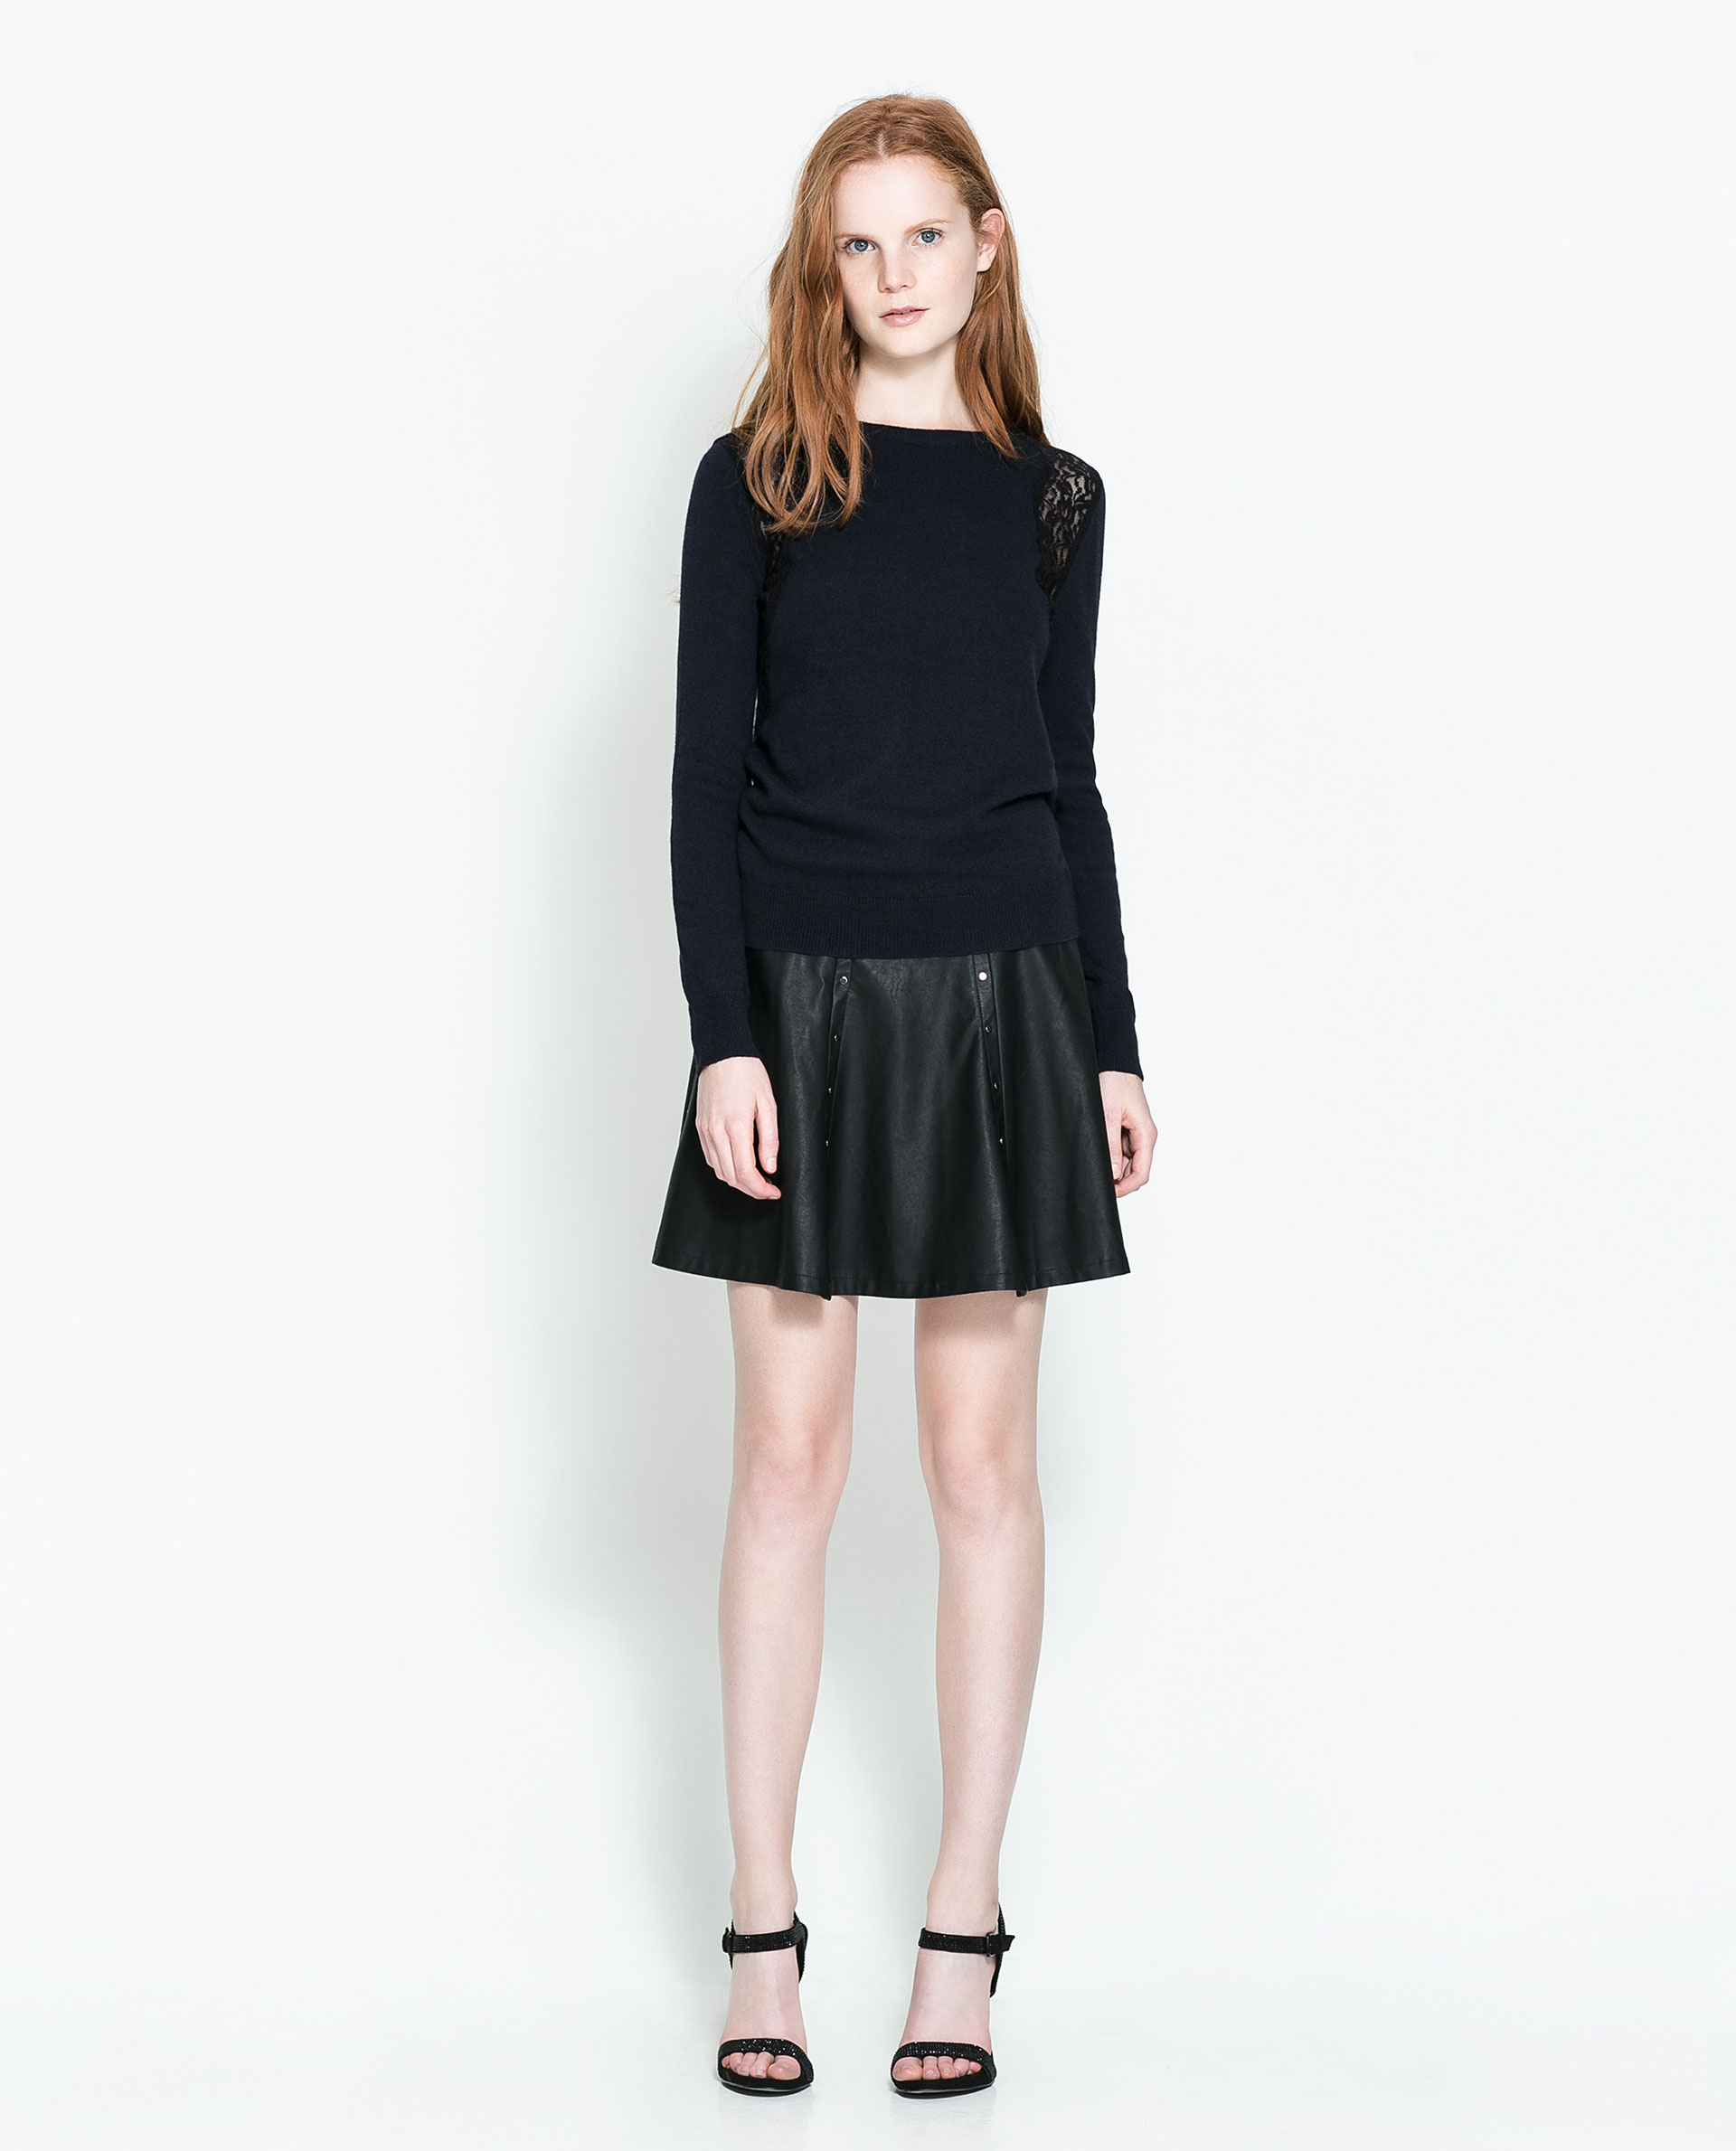 Zara Faux Leather Frilly Skirt in Black | Lyst